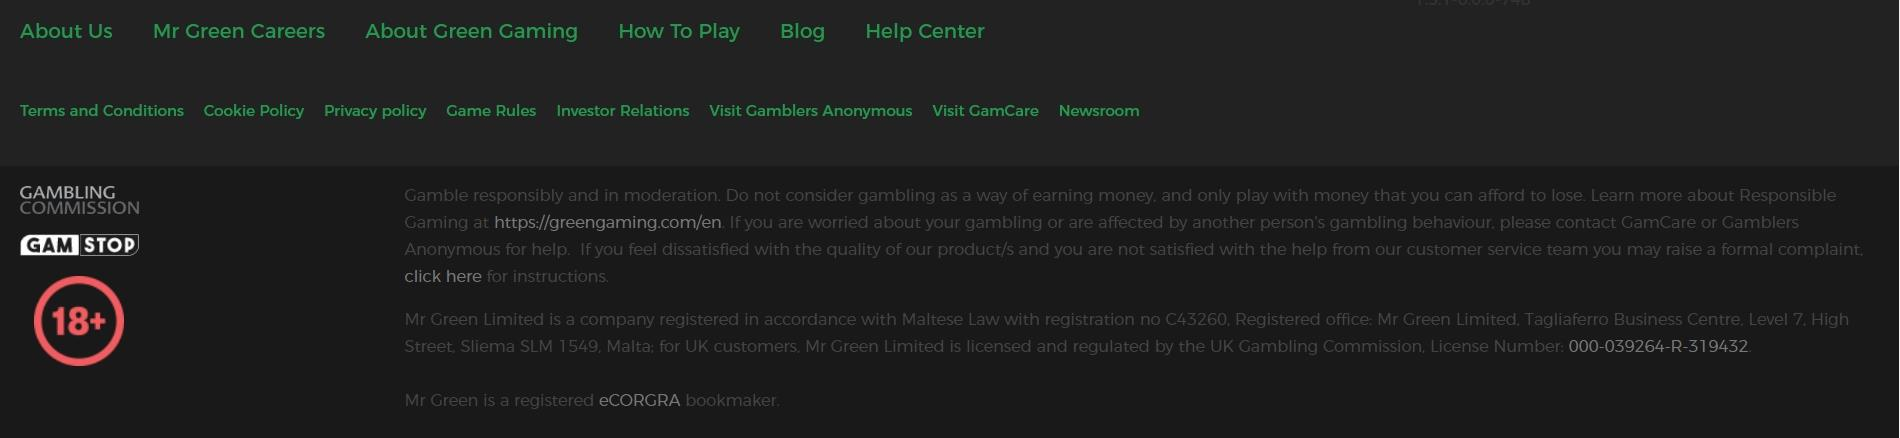 Licences and Responsible Gaming information at bottom of site